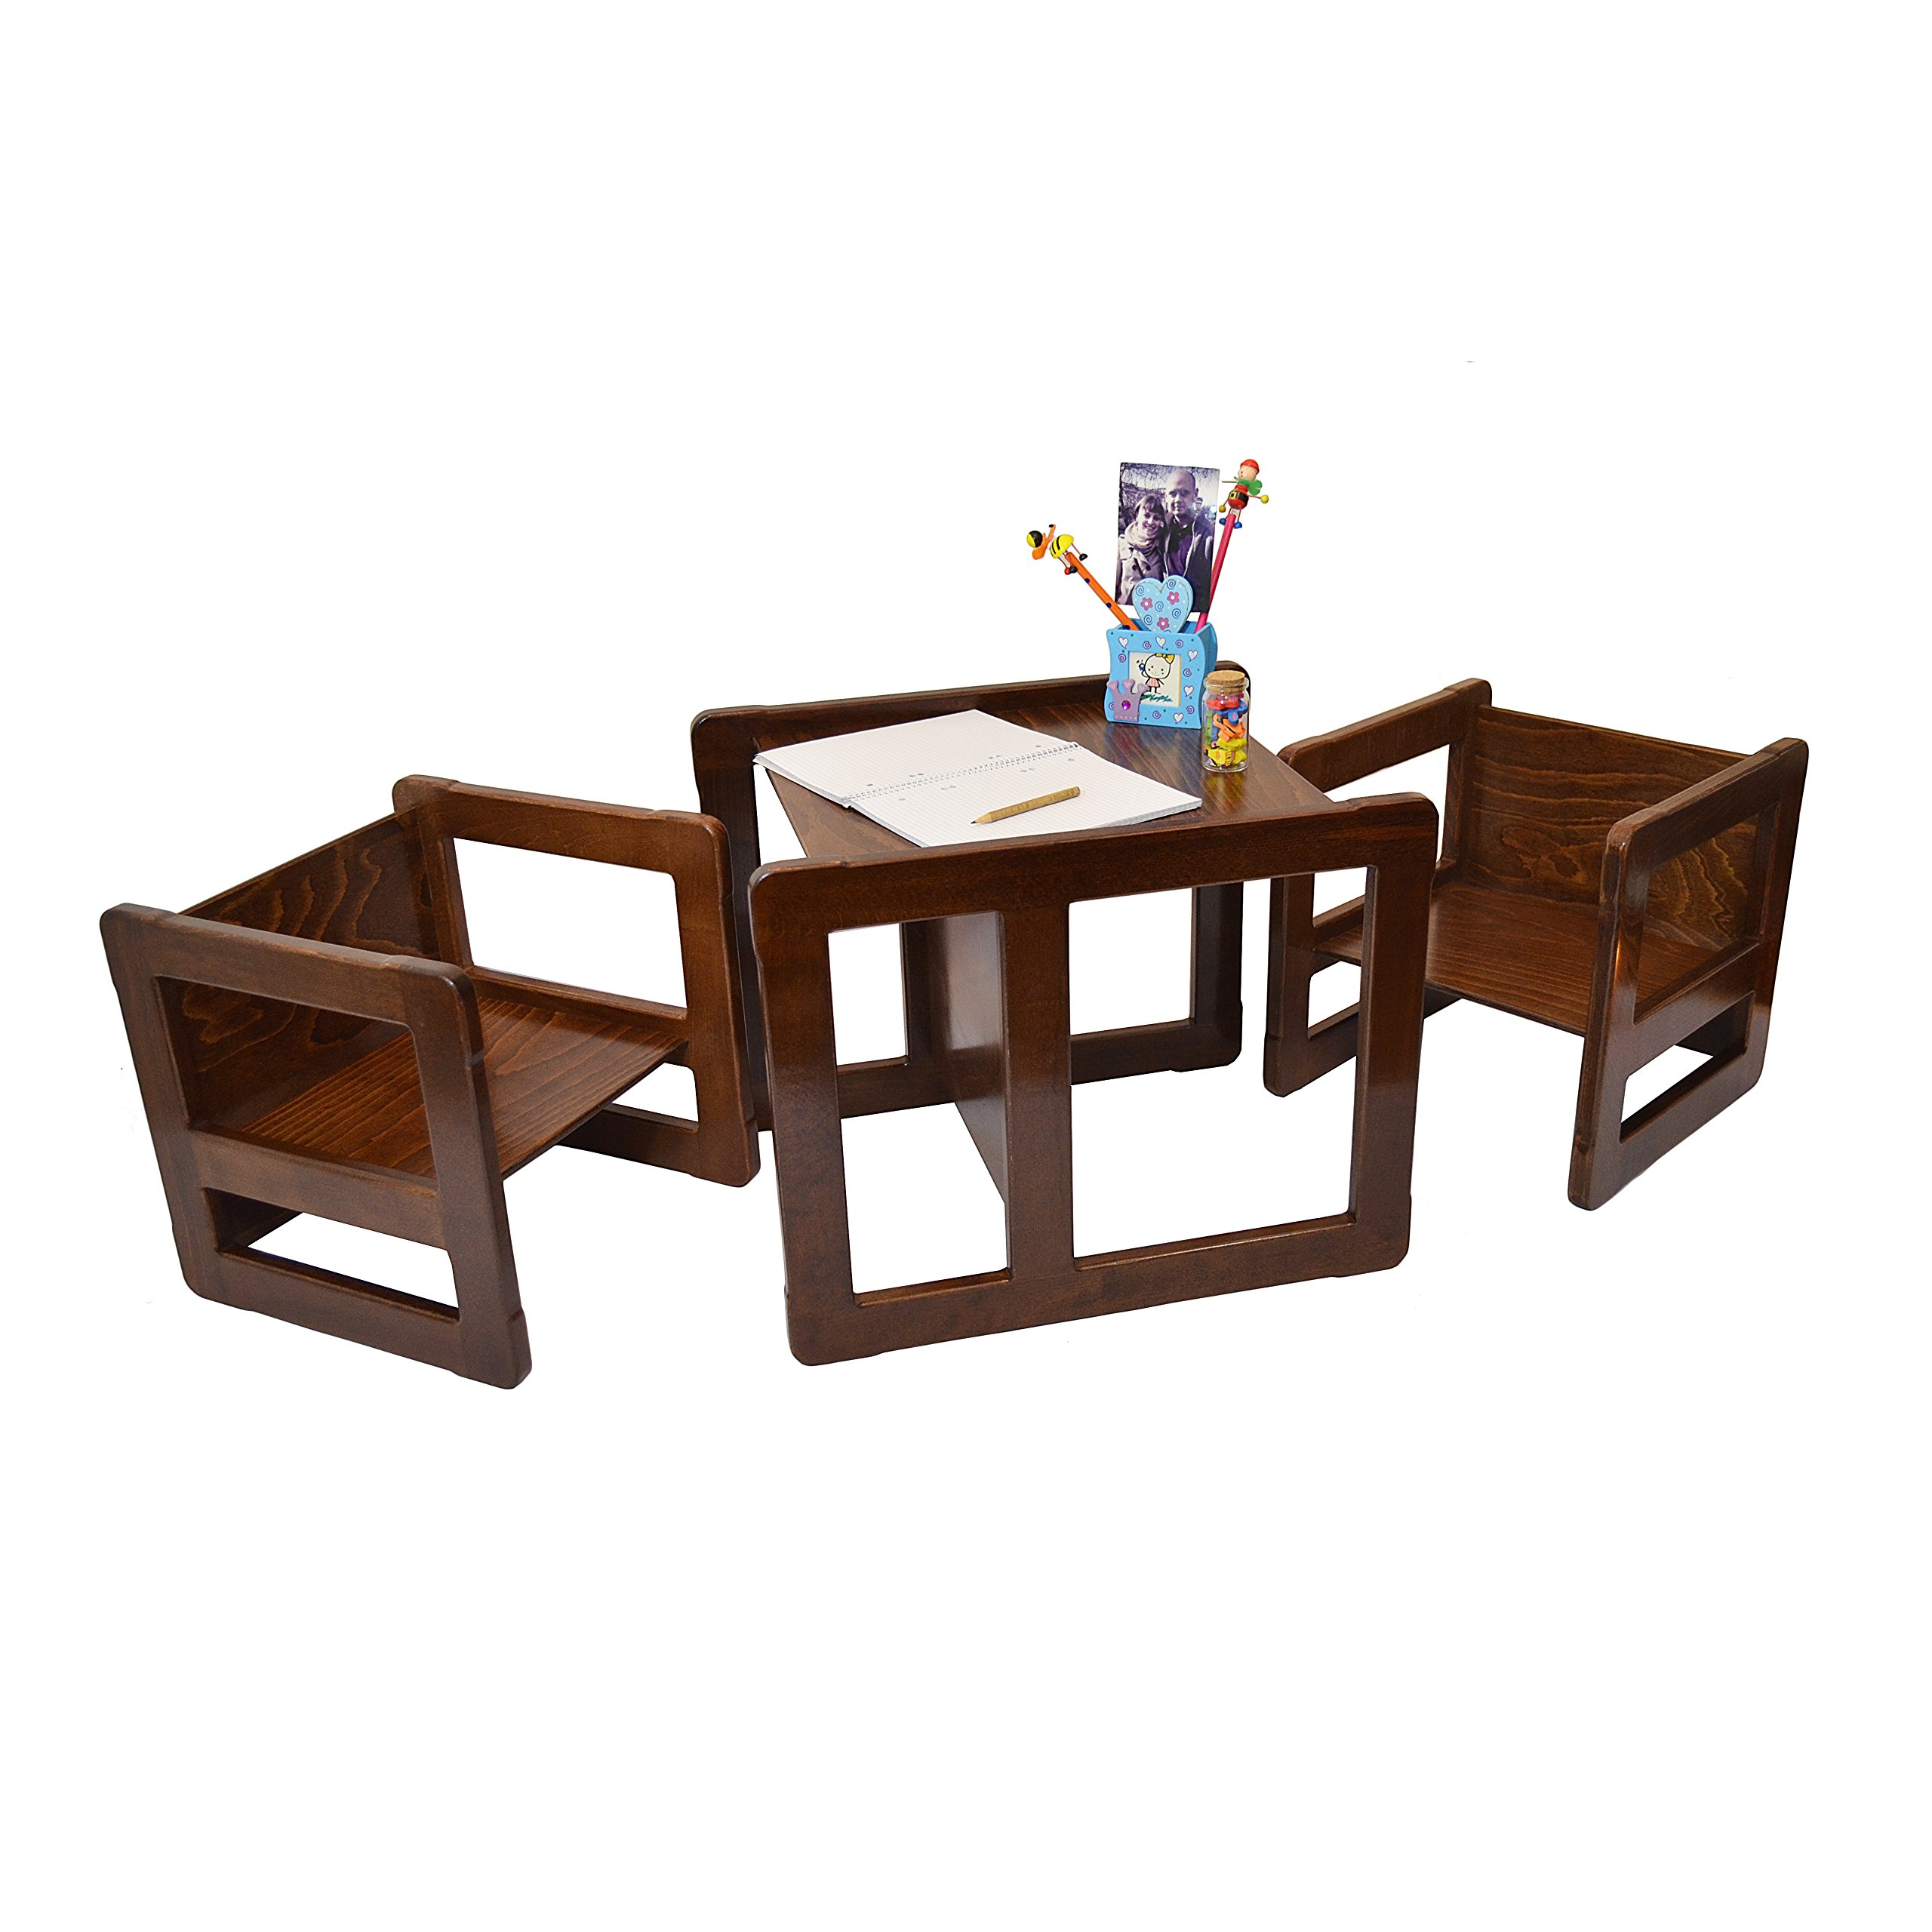 3 in 1 Childrens Multifunctional Furniture Set of 3, Two Small Chairs or Tables and One Large Chair or Table Beech Wood, Dark Stained